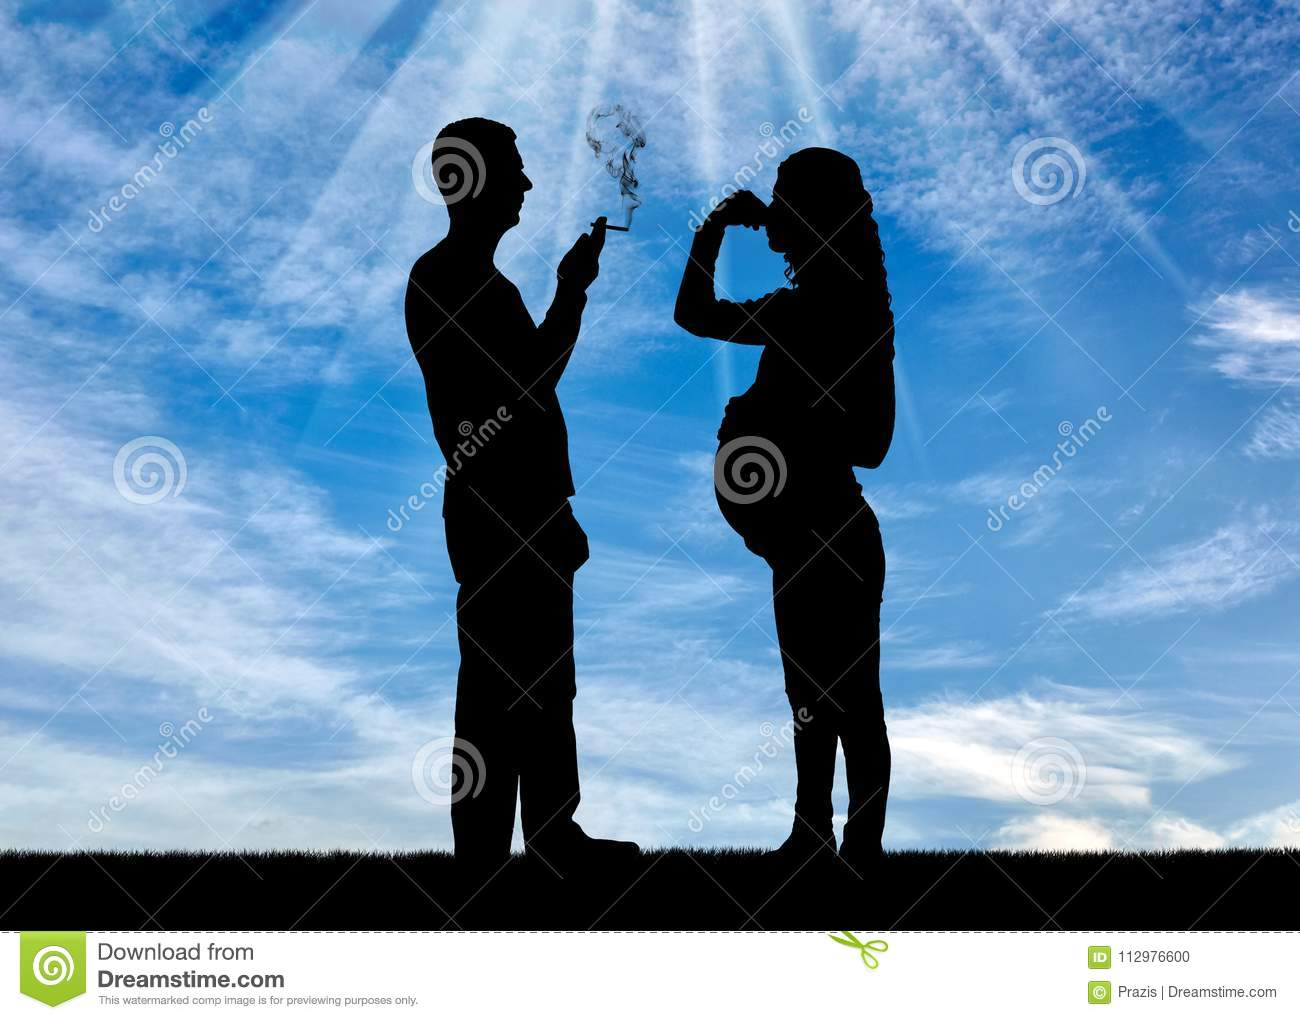 Silhouette of a man egoist smoking near a pregnant woman. She covered her nose with her hand from the smoke